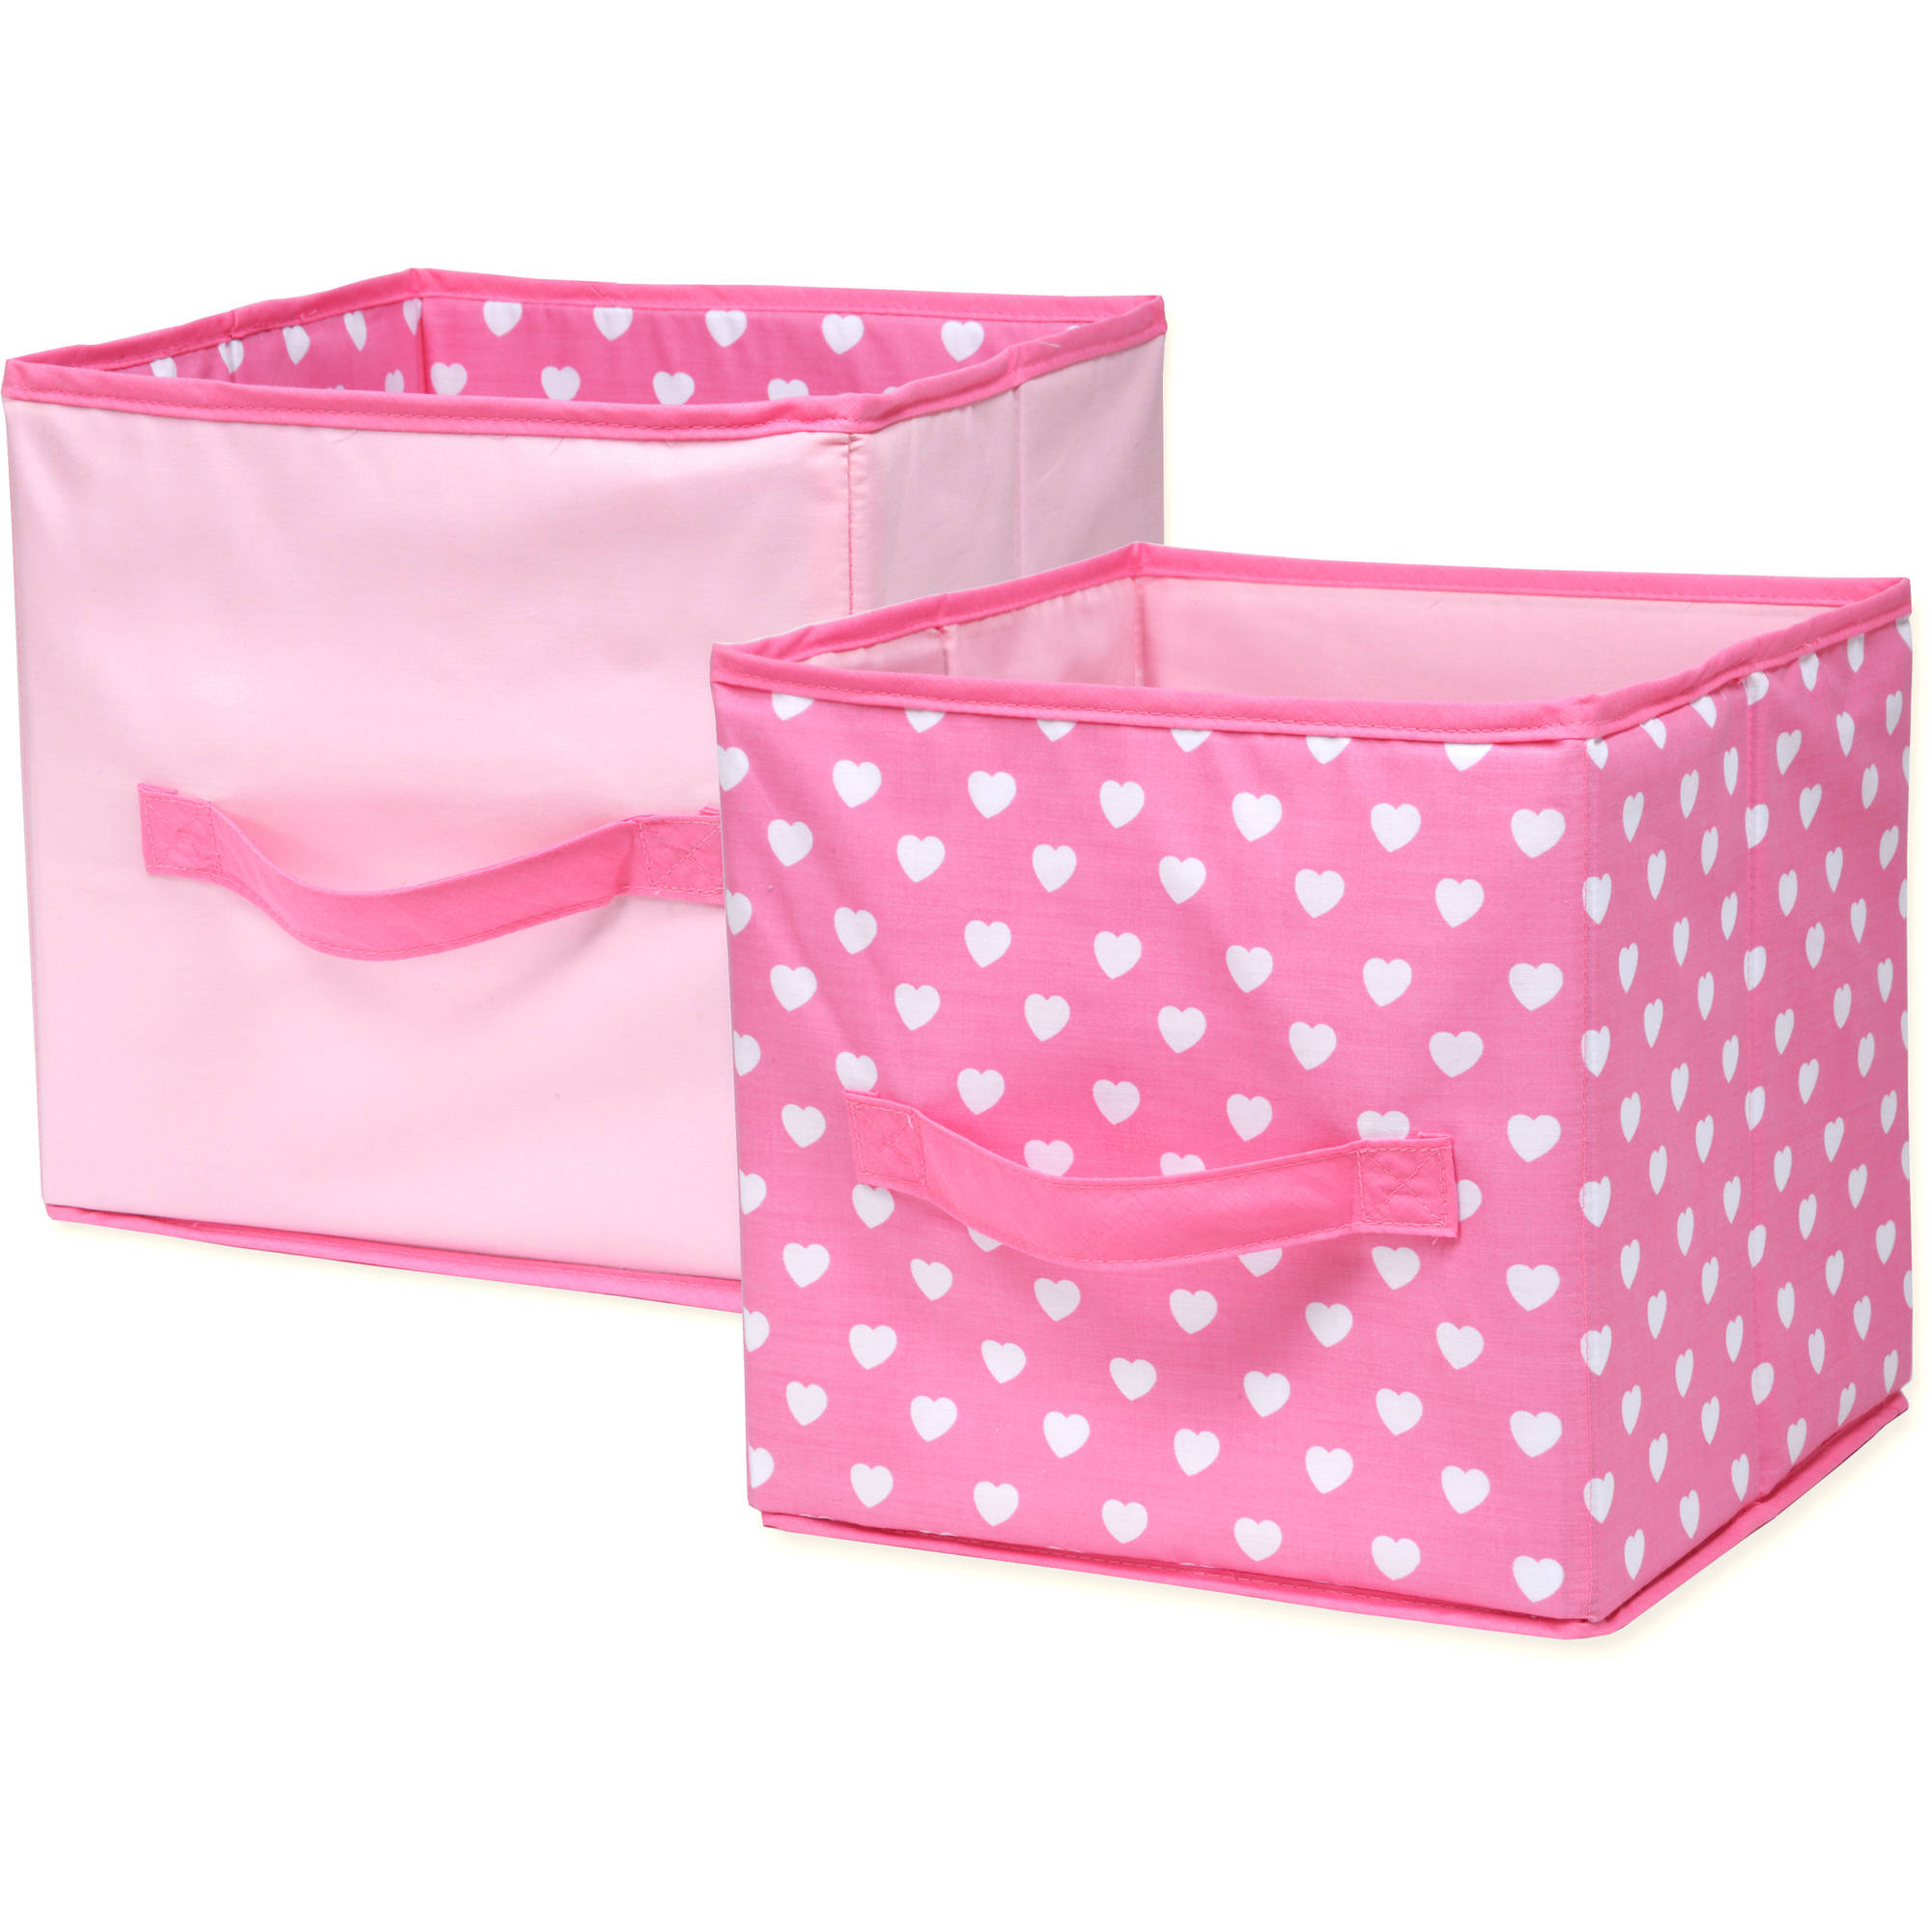 Little Bedding by Nojo Sweet Dreams Collapsible Storage Bin, 2pk